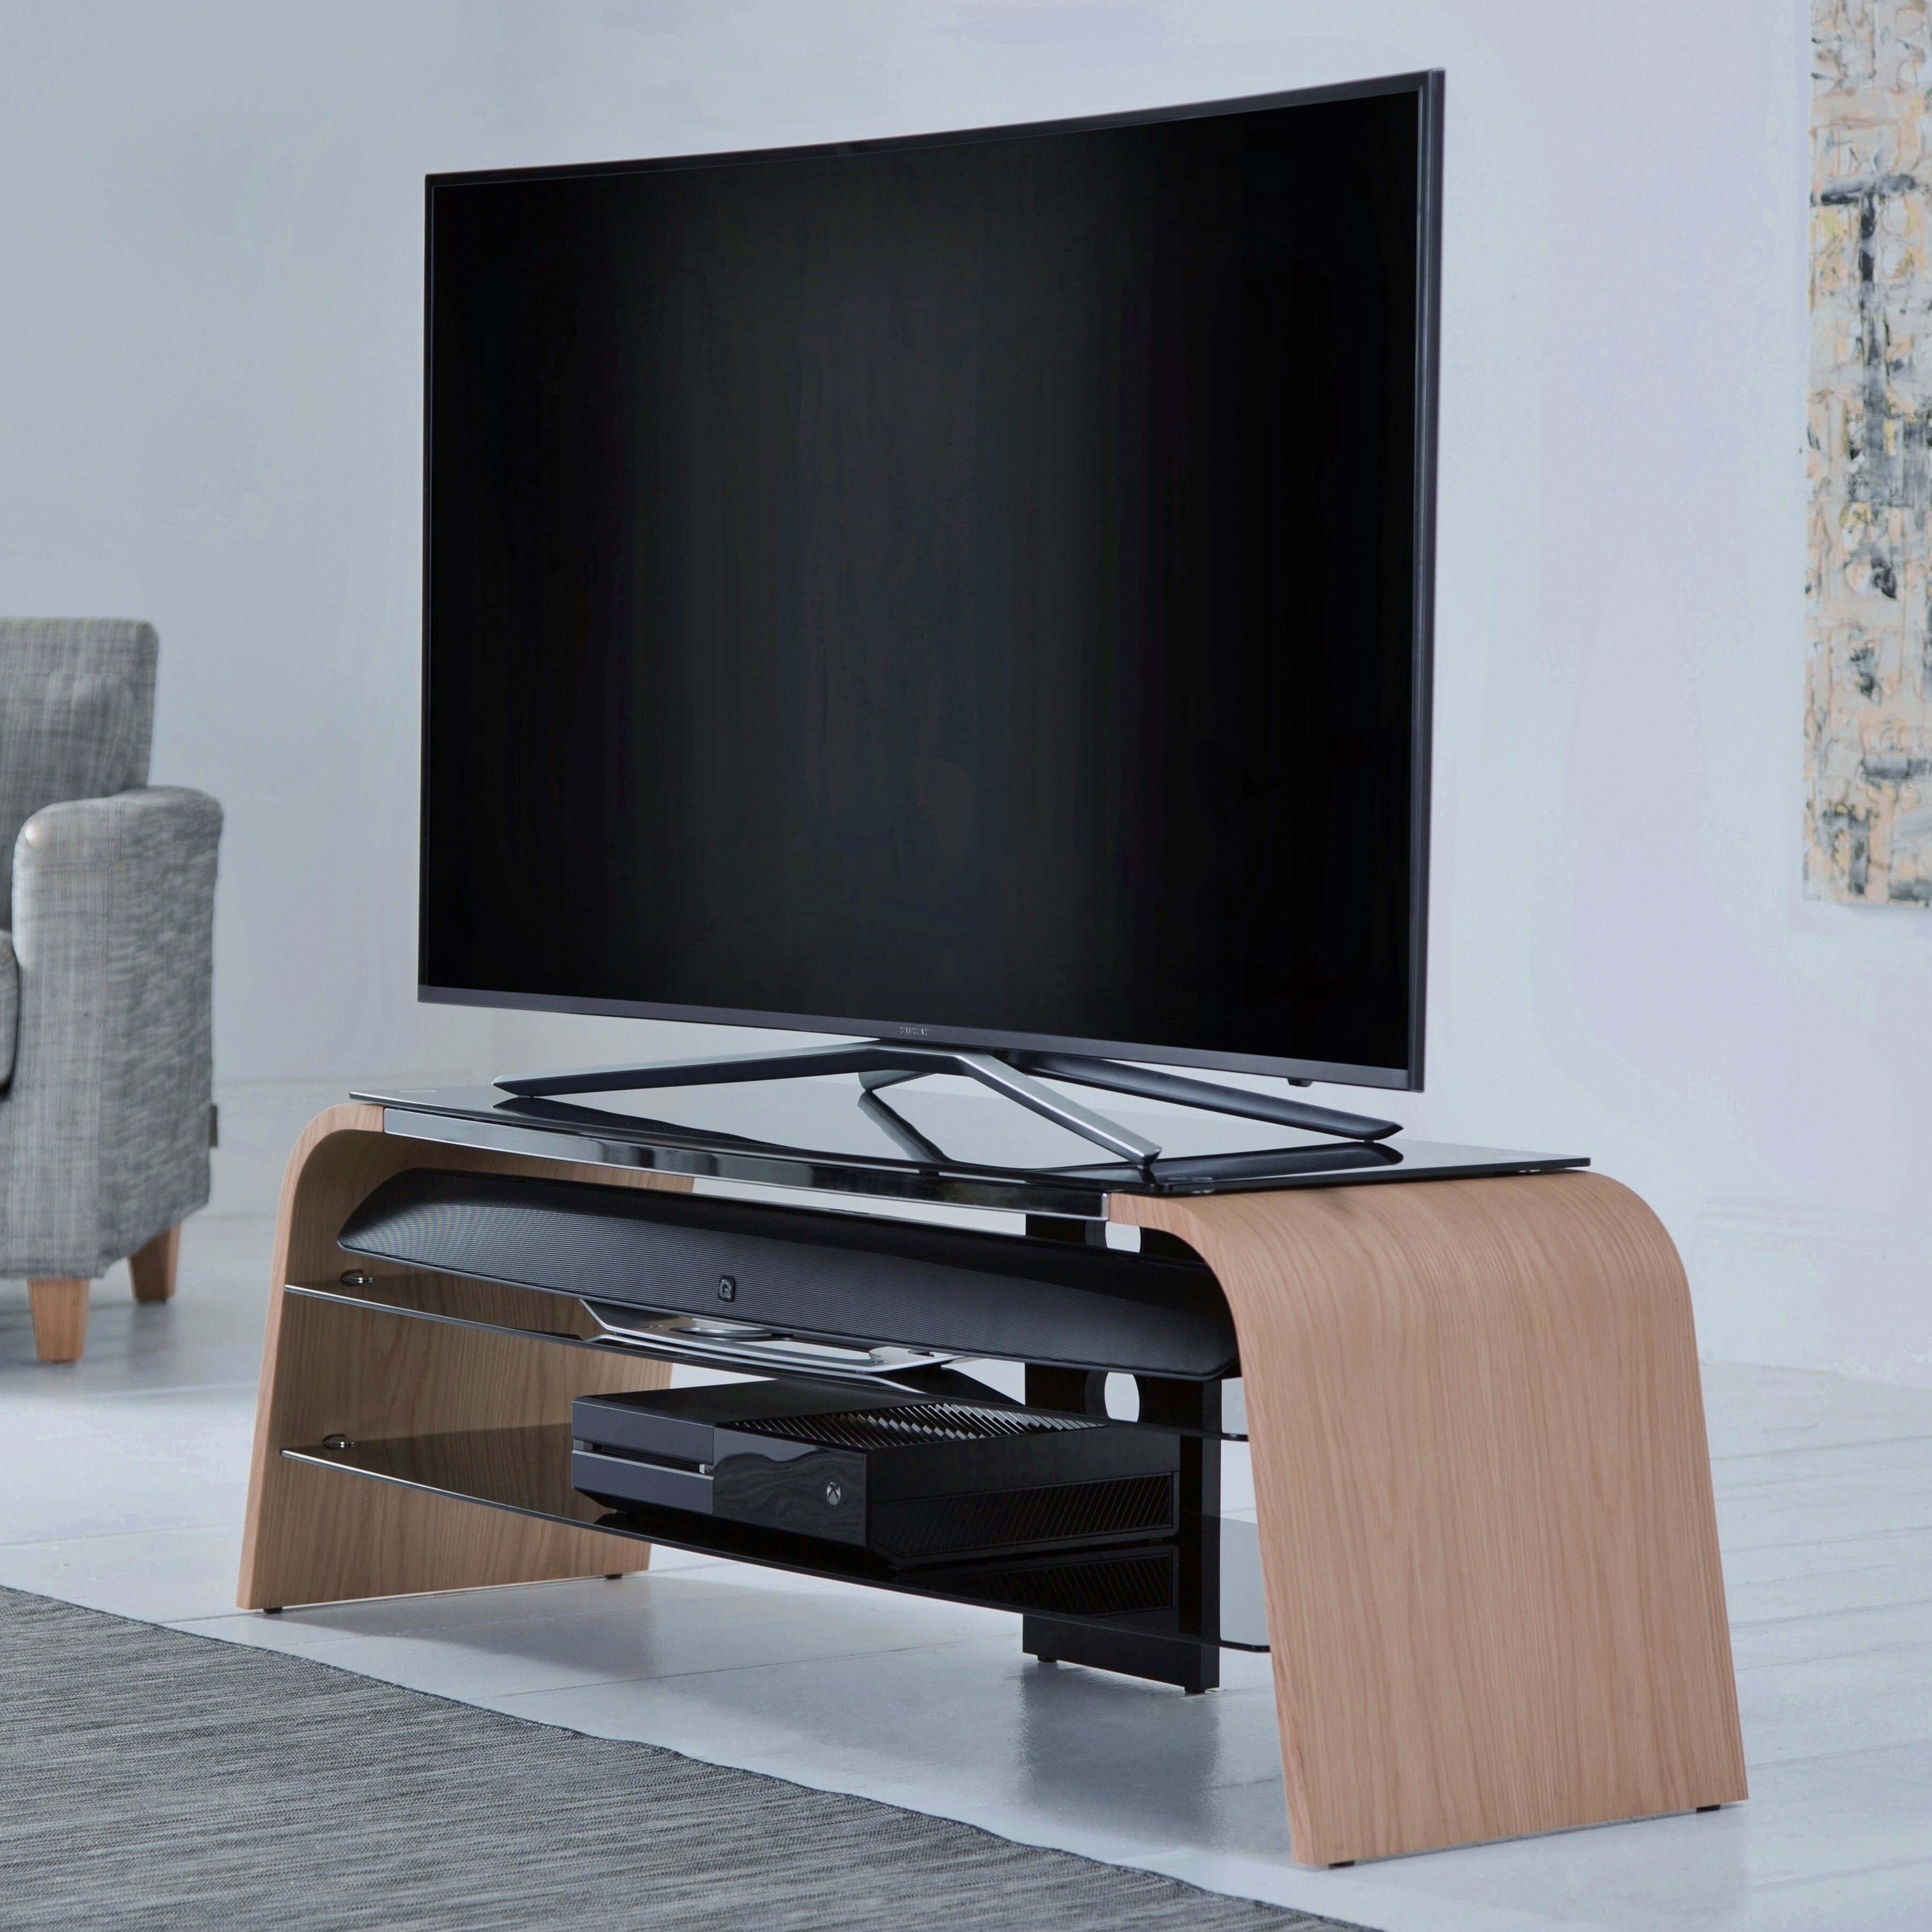 Alphason Design First Spectrum 1200 TV Stand For TVs Up To